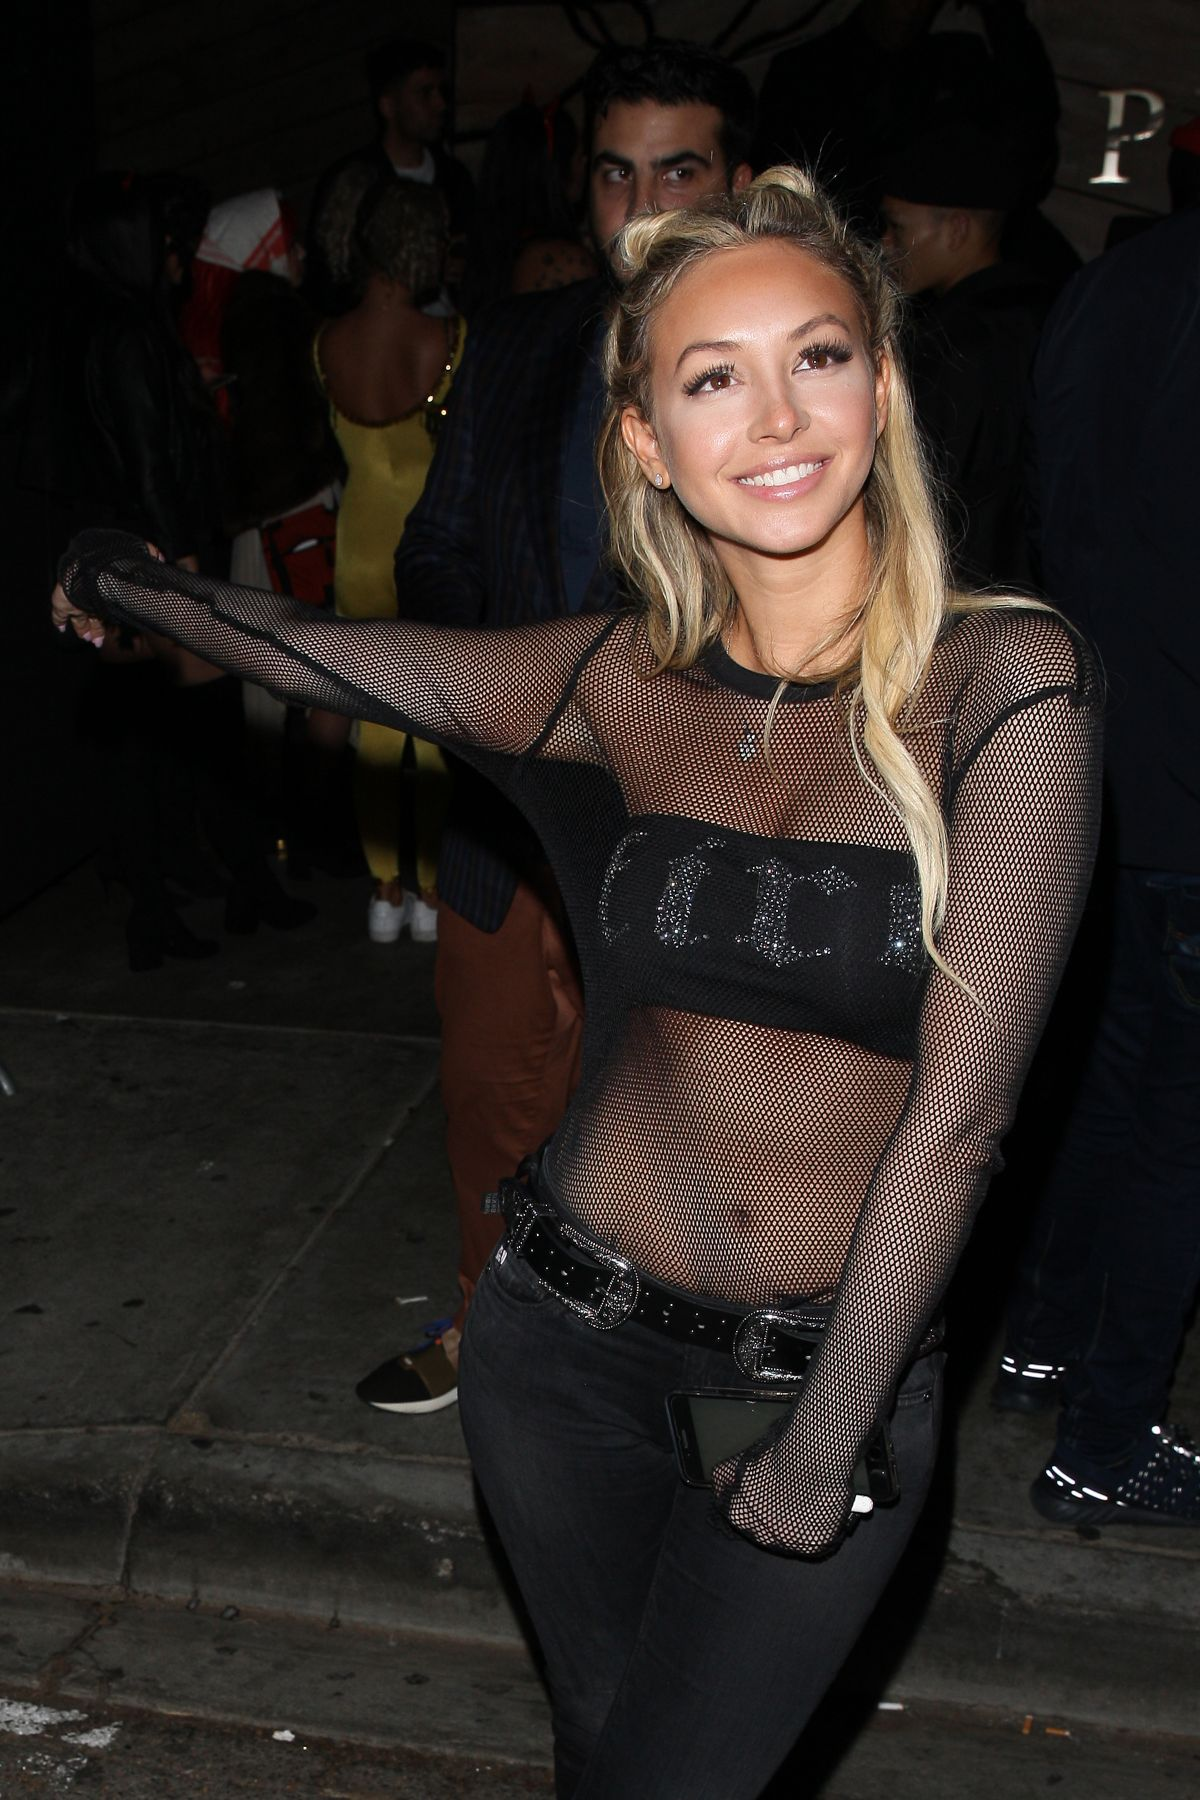 Corinne Olympios Parties at the Poppy club with her friend in West Hollywood